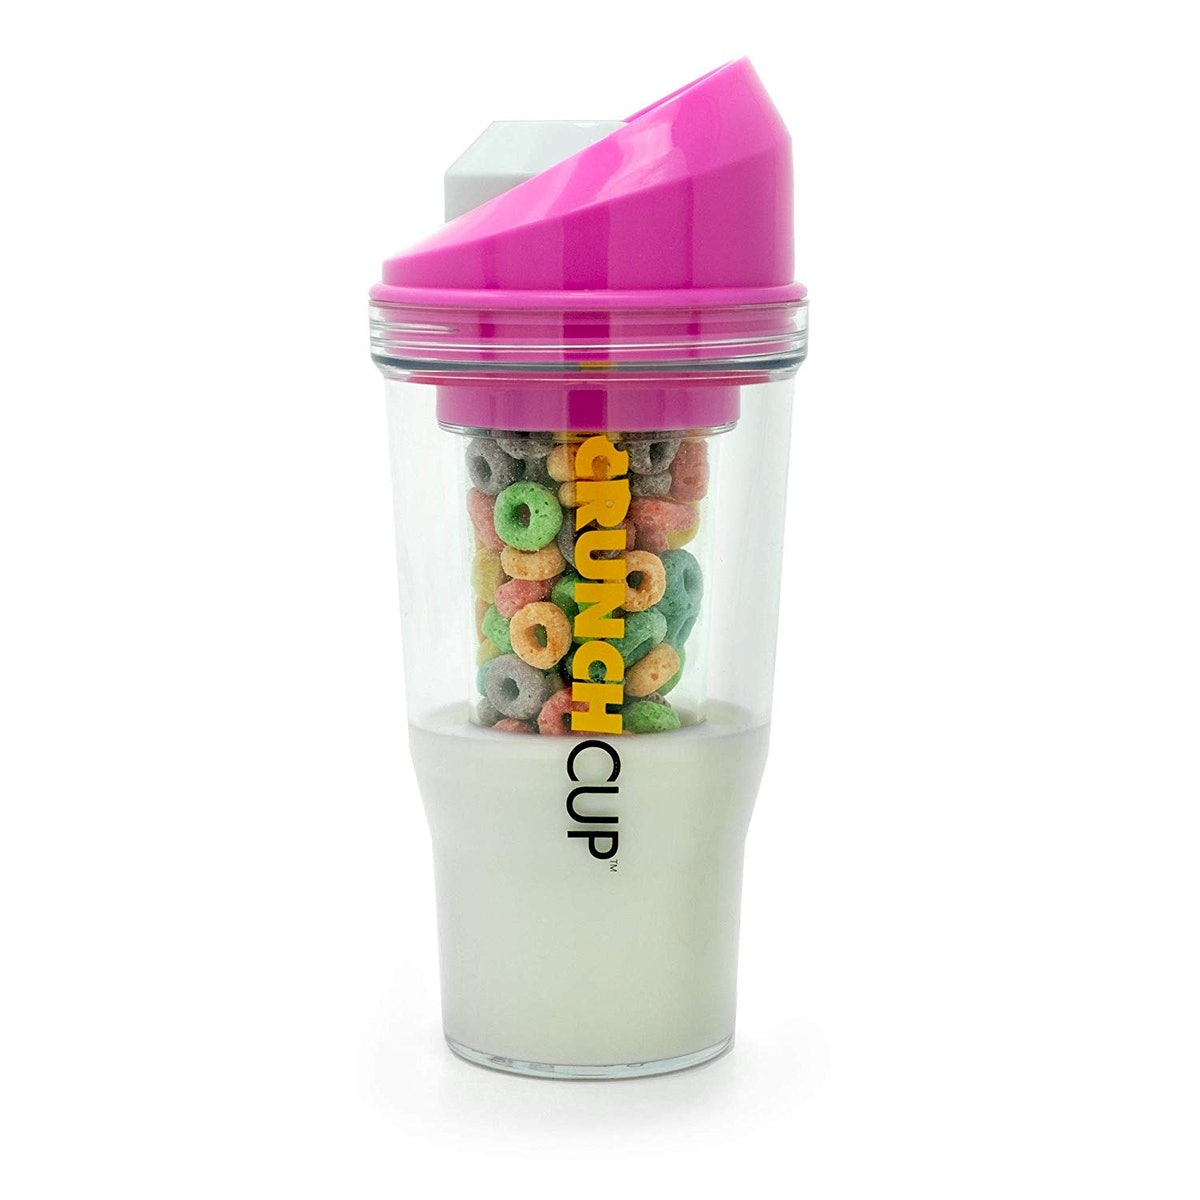 The CrunchCup Portable Cereal Cup